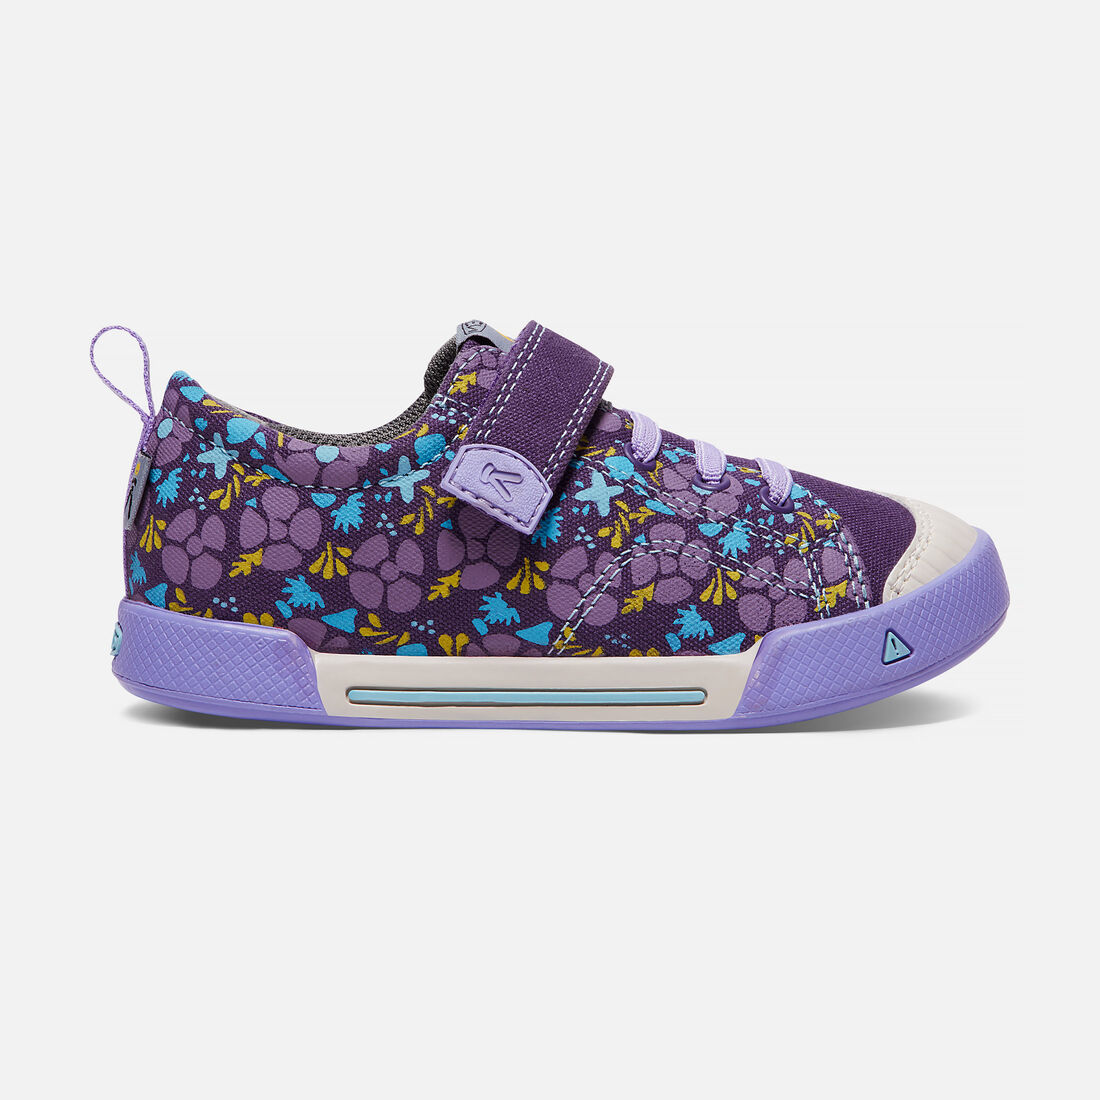 Little Kids' ENCANTO FINLEY LOW in Purple Plumeria/Lavender - large view.